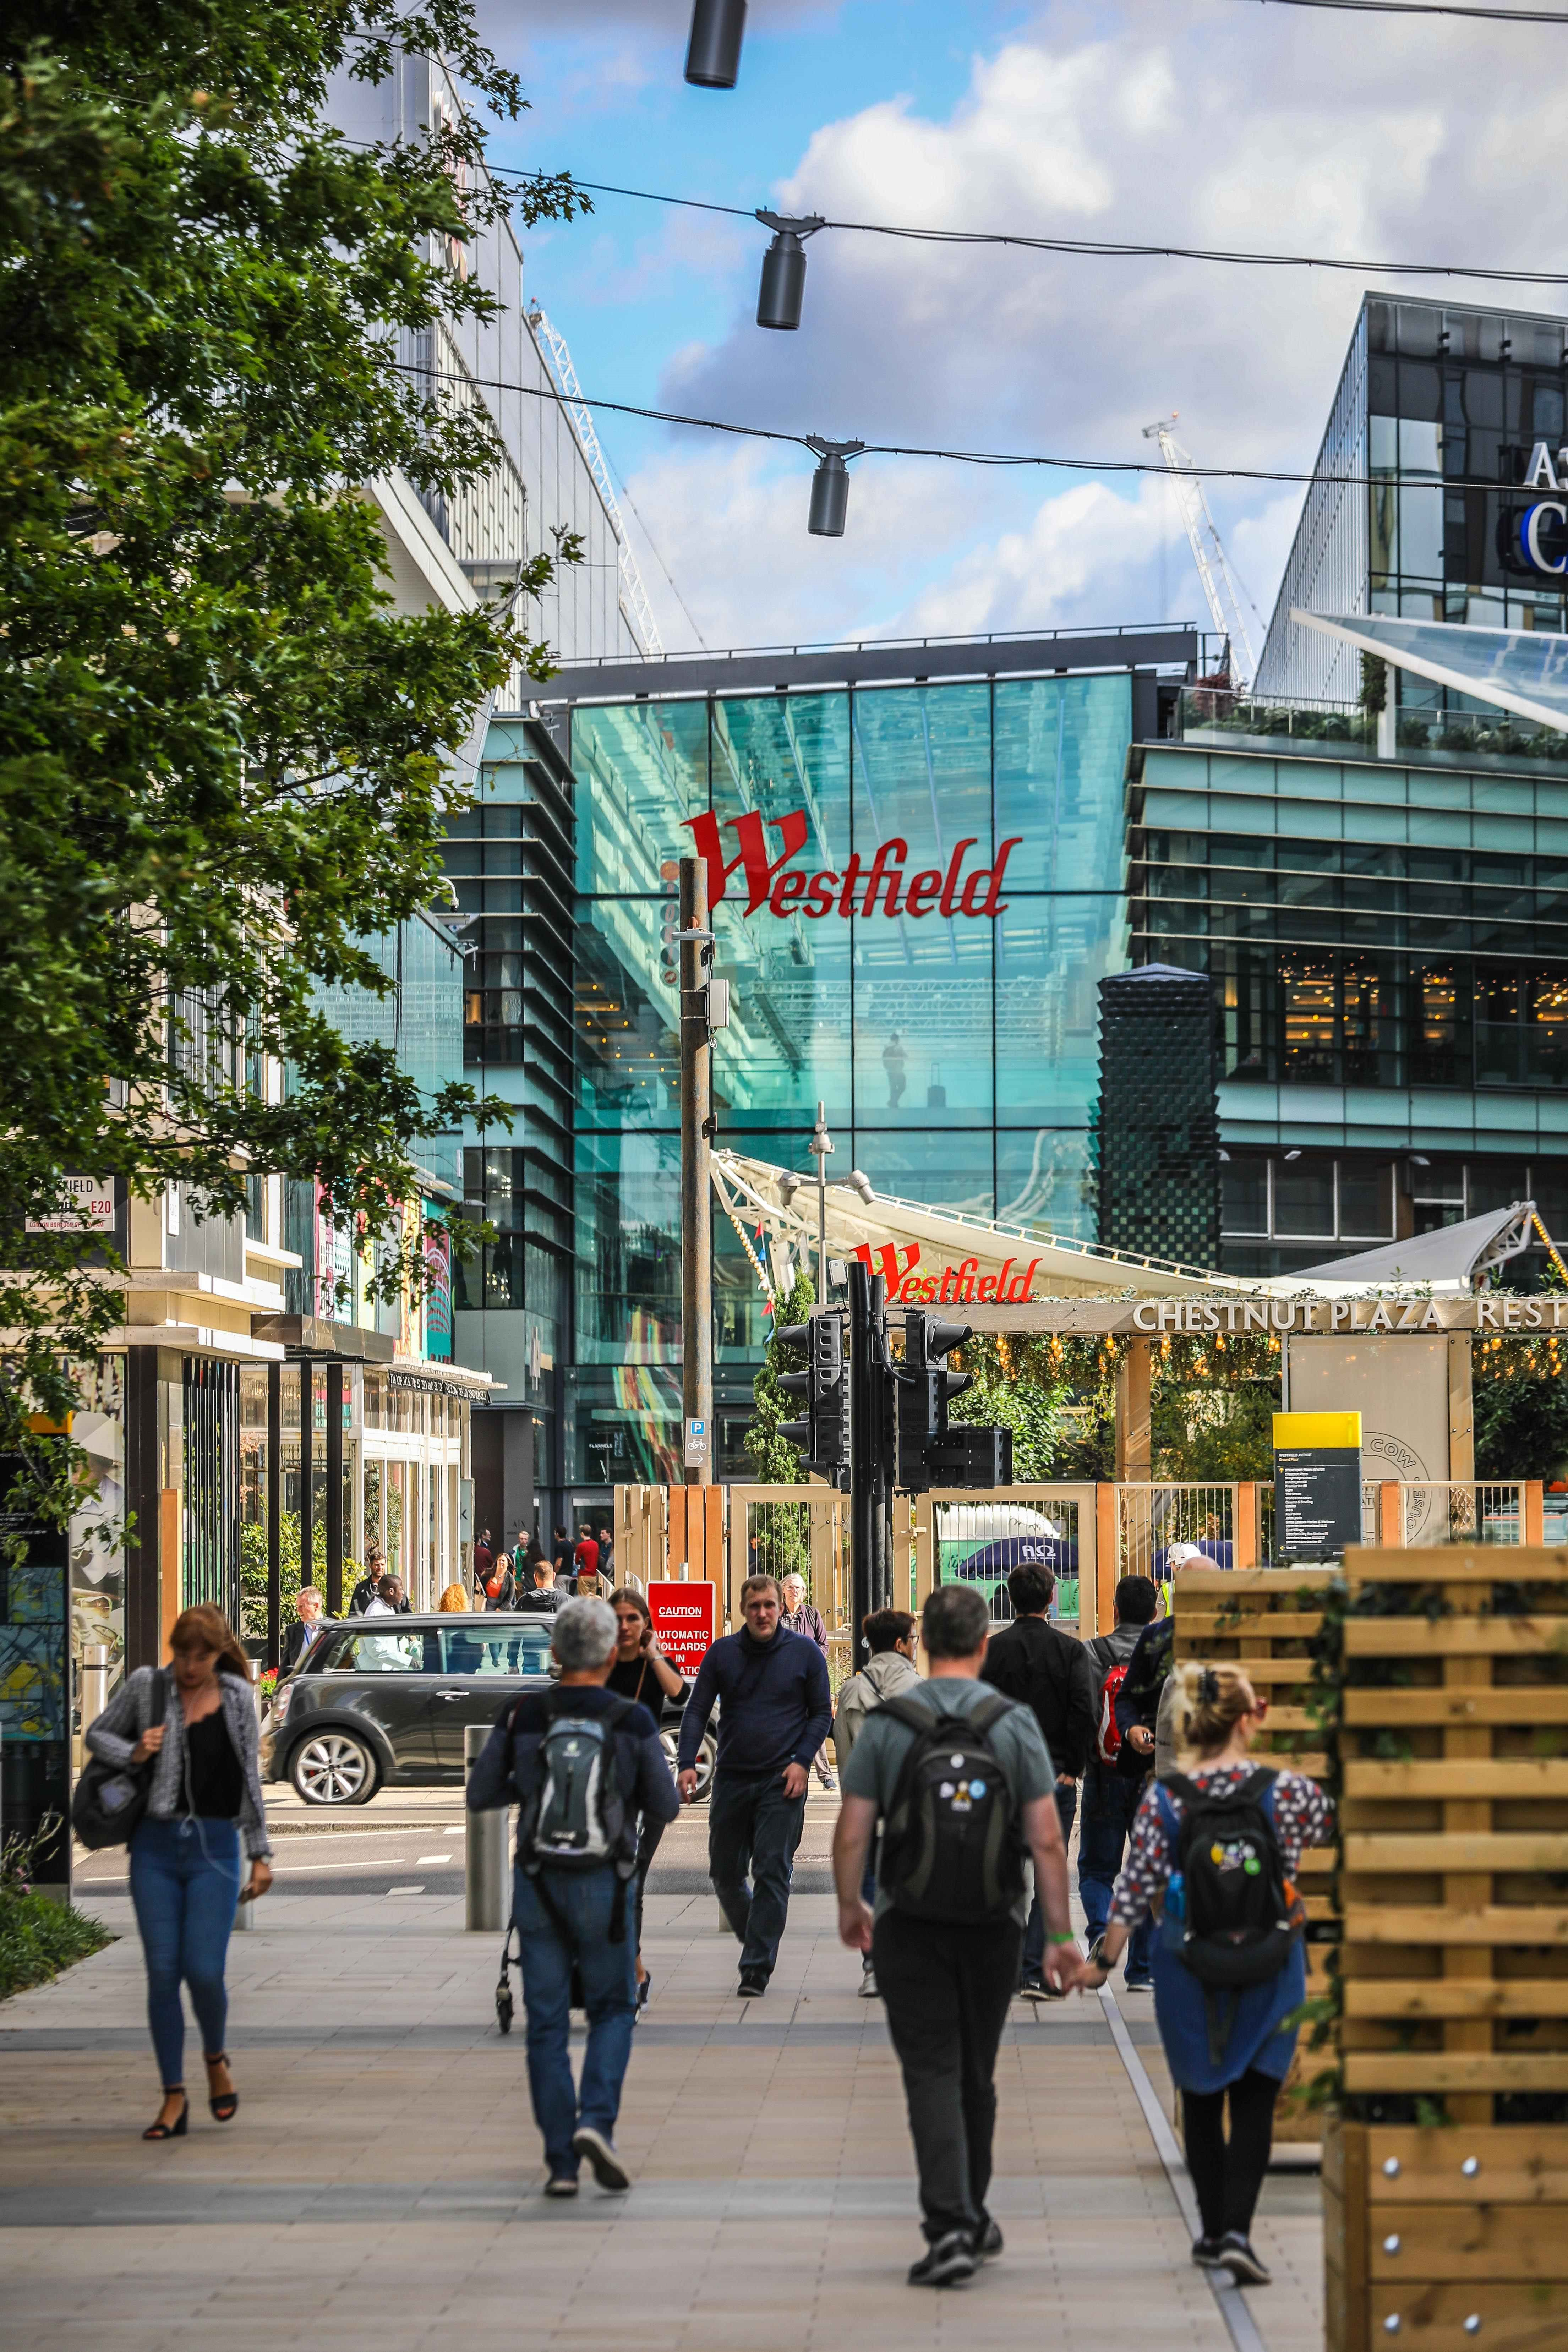 Westfield Shopping Centre, Stratford | Greenway - Local area photography